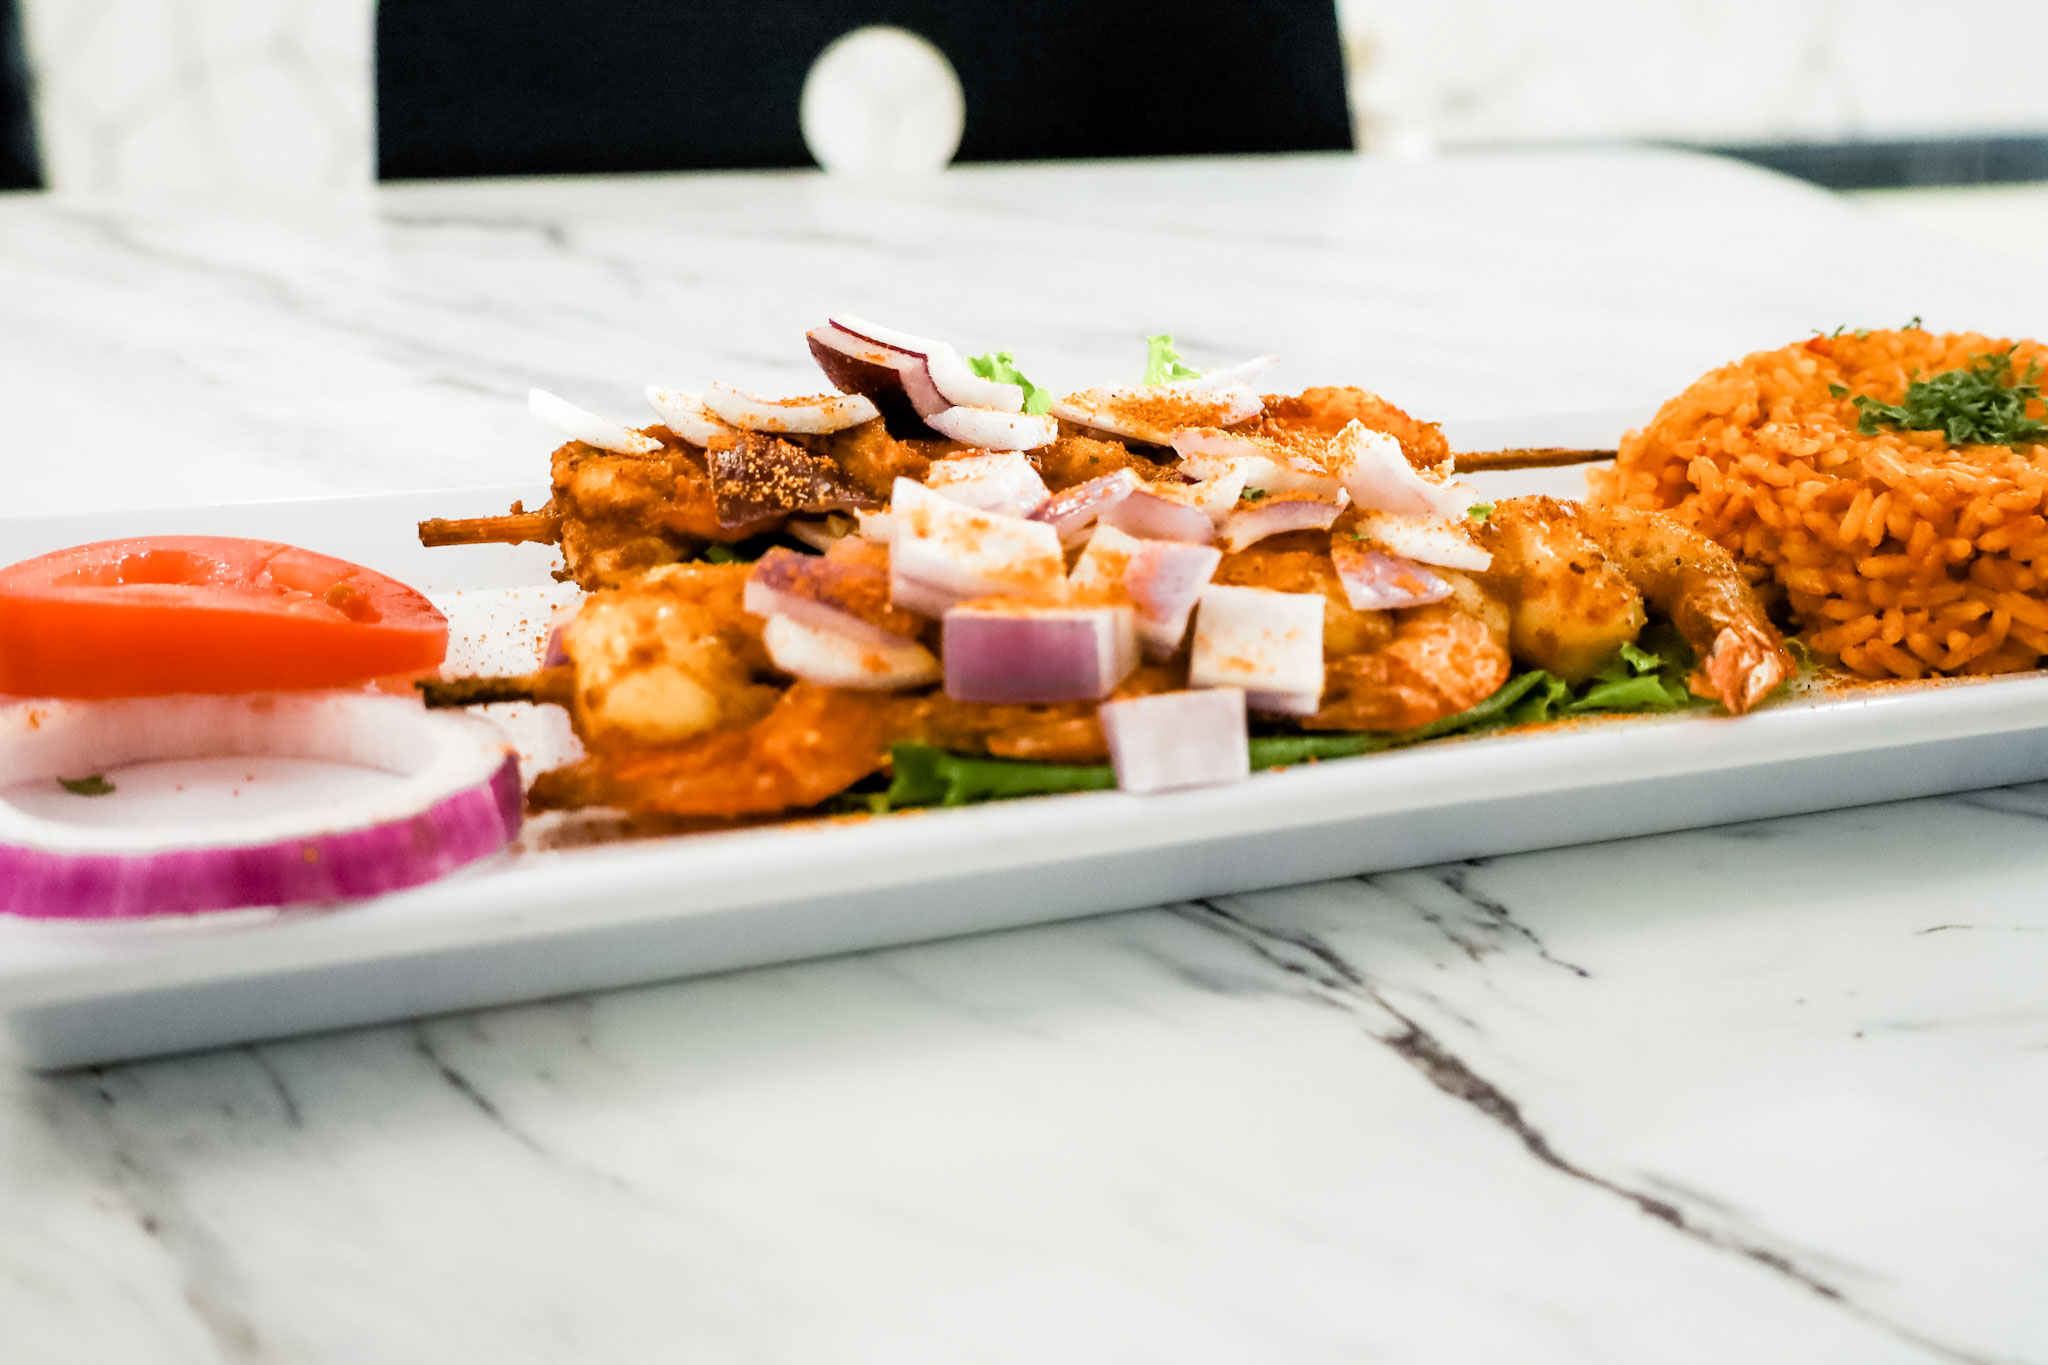 A close up of grilled shrimps on skewers.